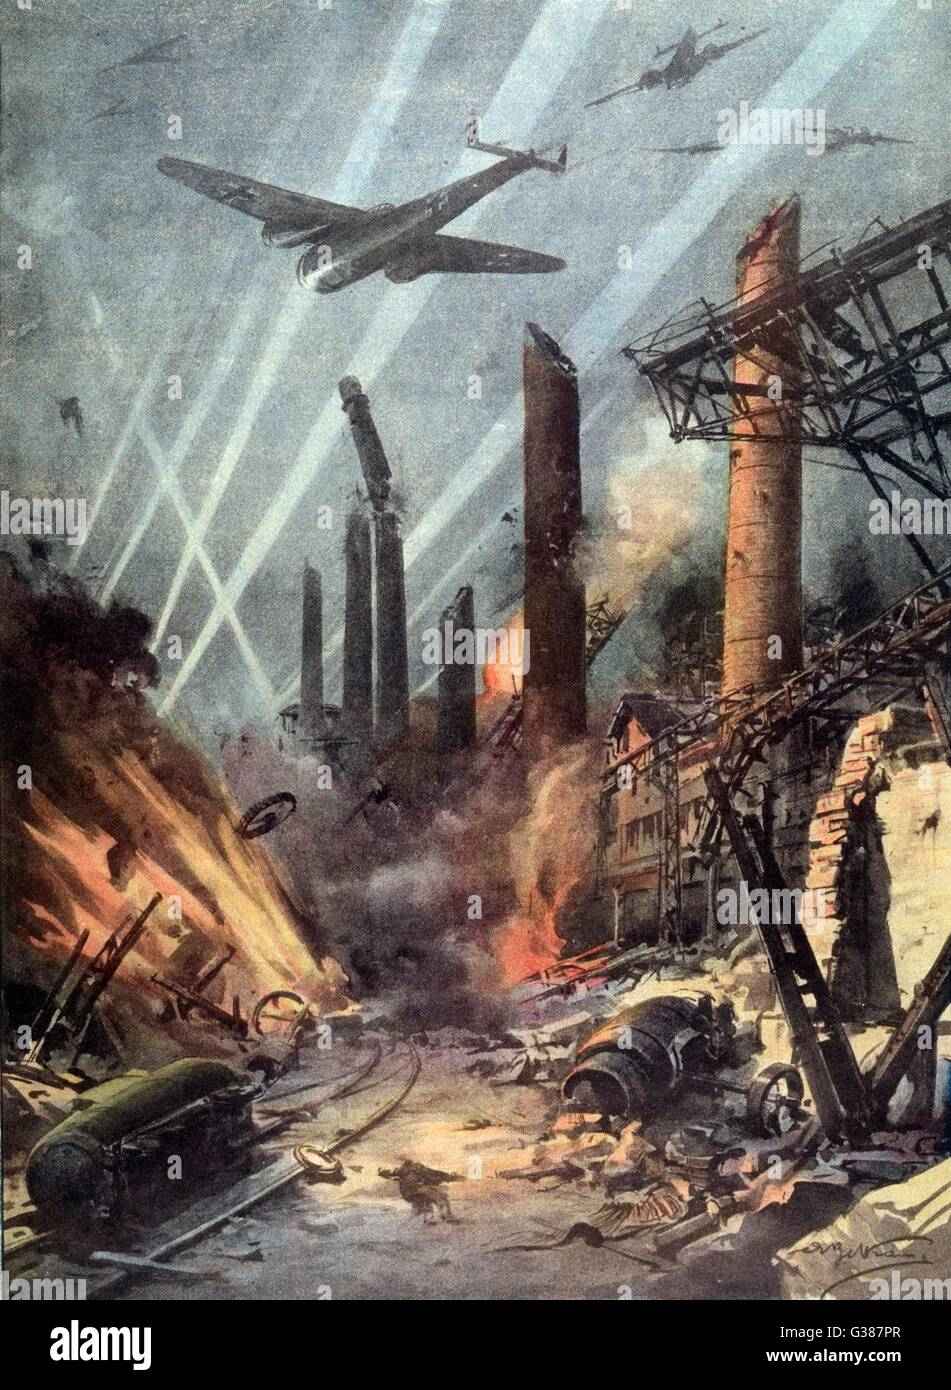 German bombers destroy the  armaments factories at  Sheffield        Date: December 1940 - Stock Image